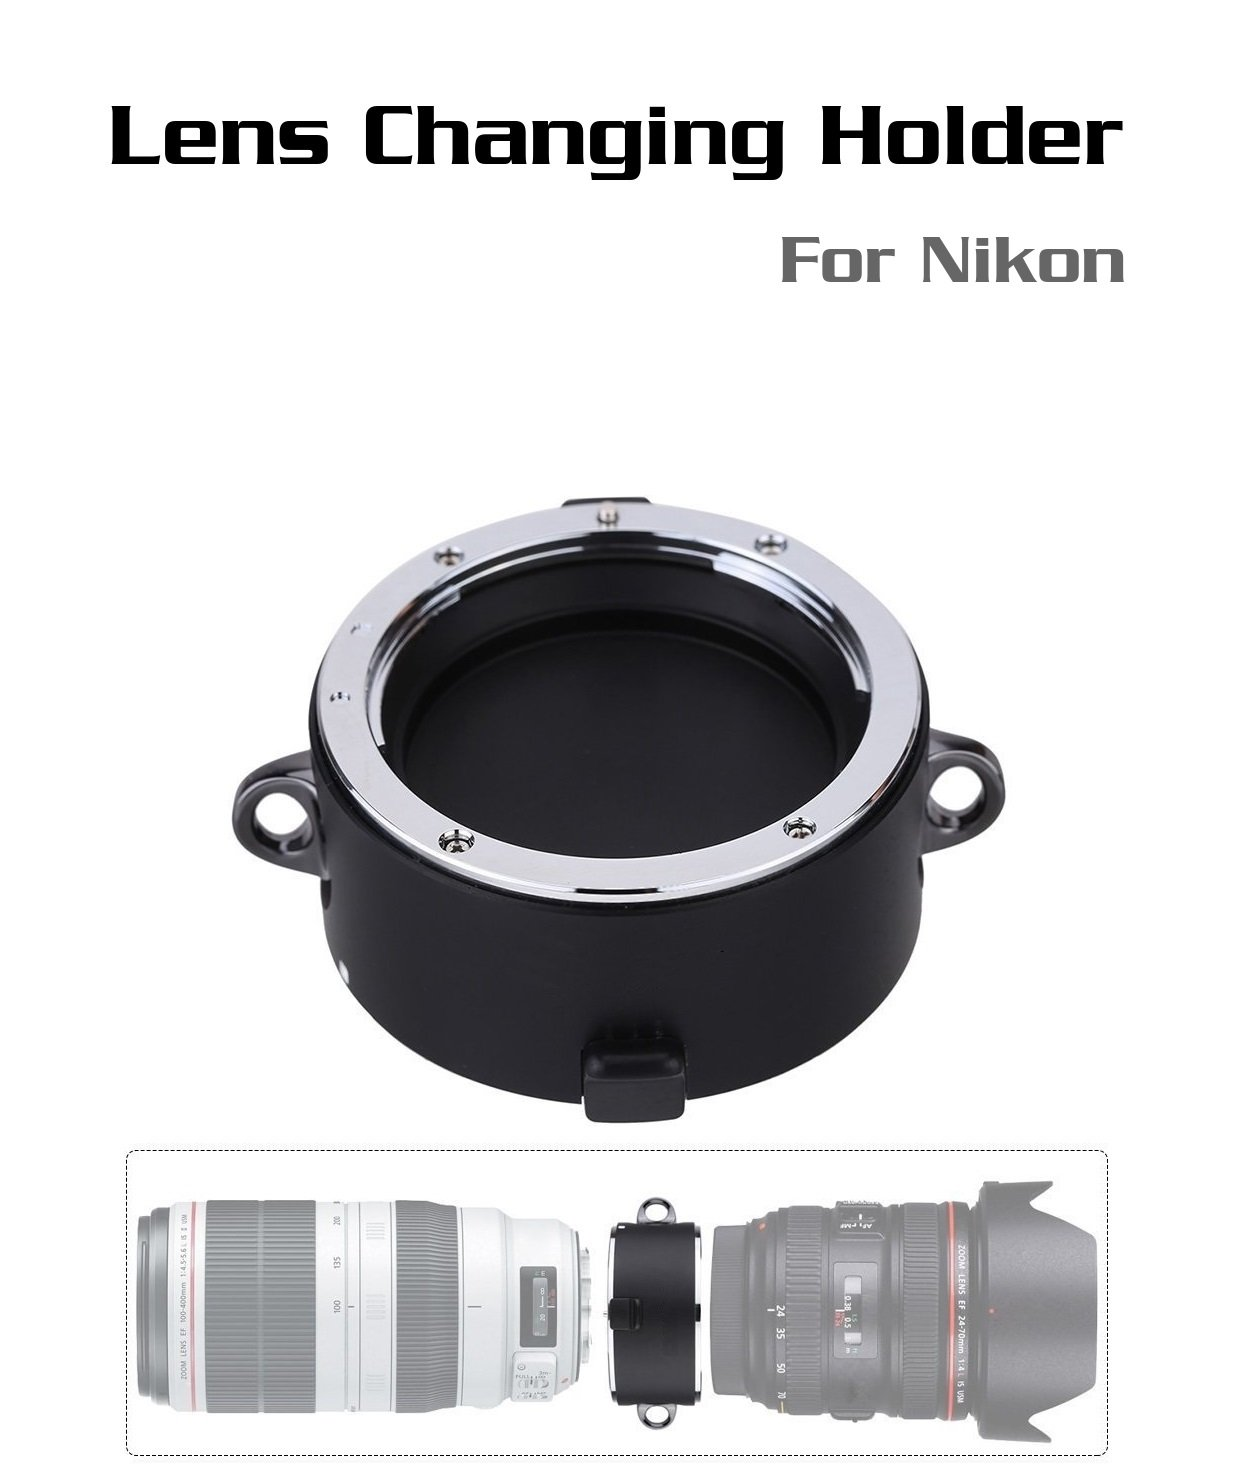 [ For Nikon ] Lens changing stand-by helper Quick changing tool equipment flipper double lens holder DSLR Lens (Nikon)